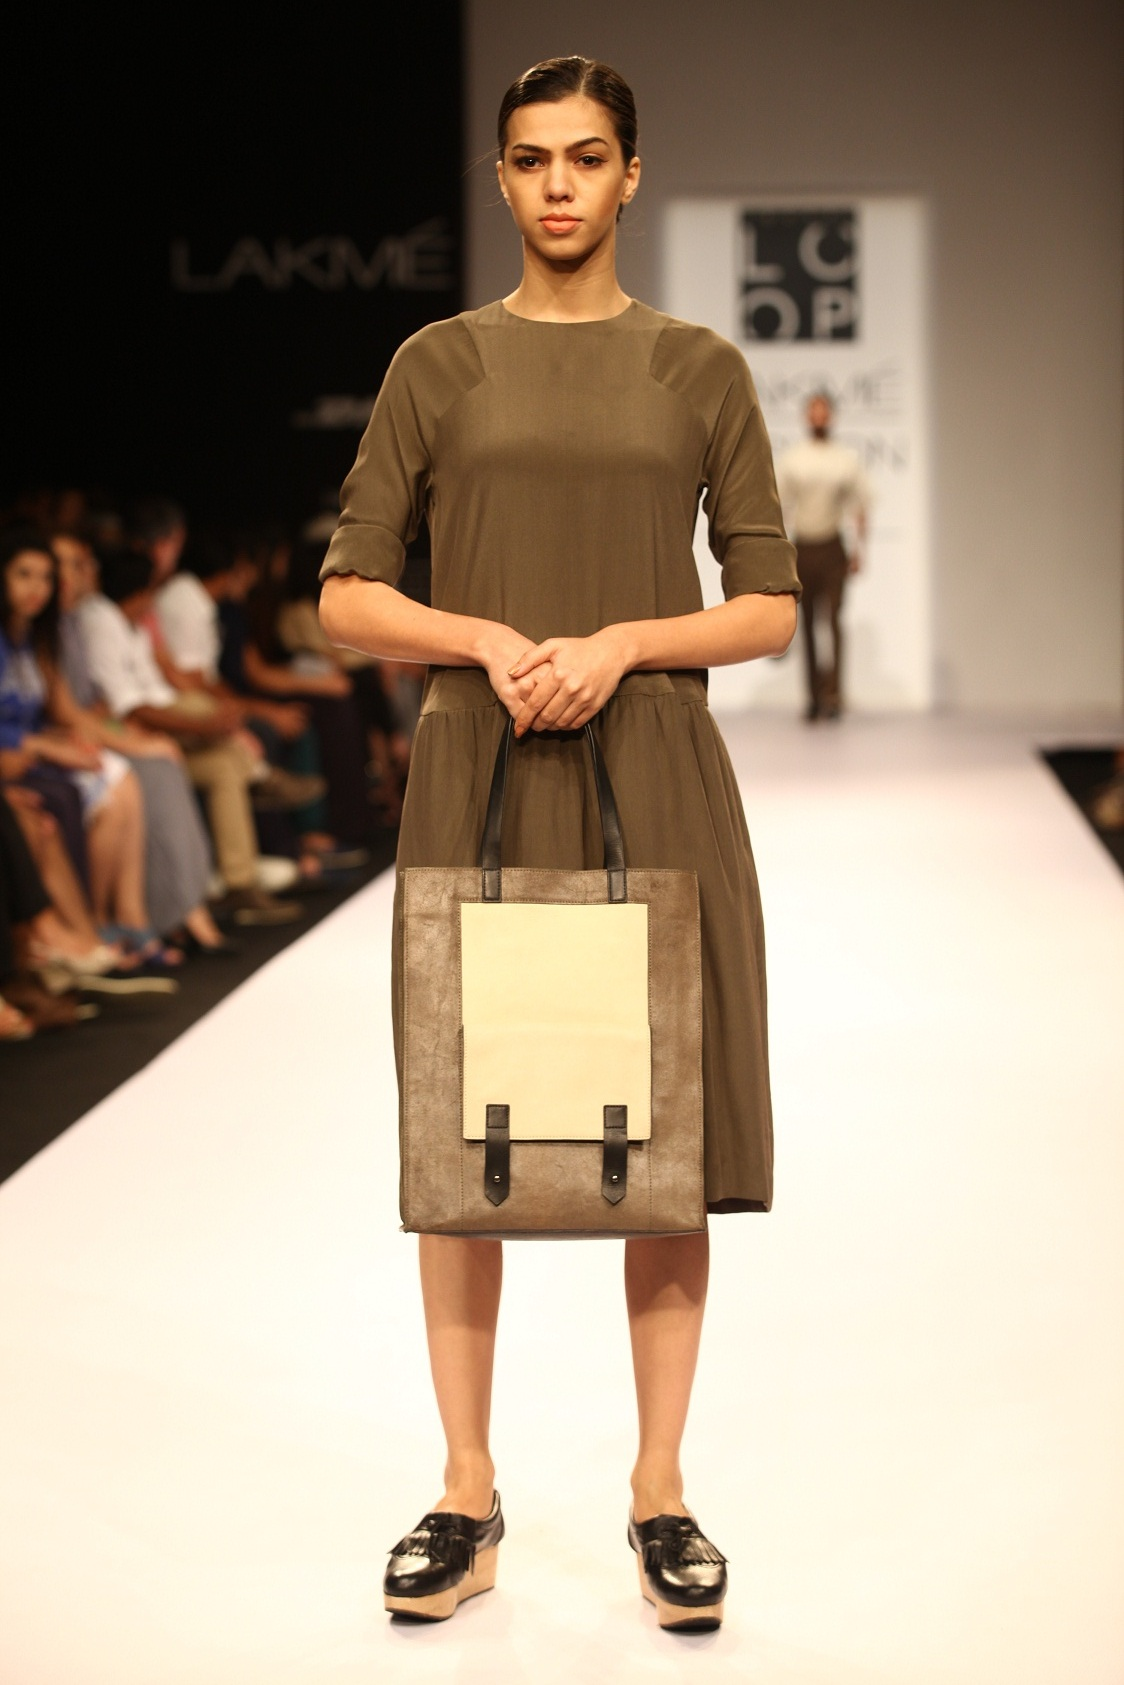 Bags at Square Loop by Kanika Sachdeva